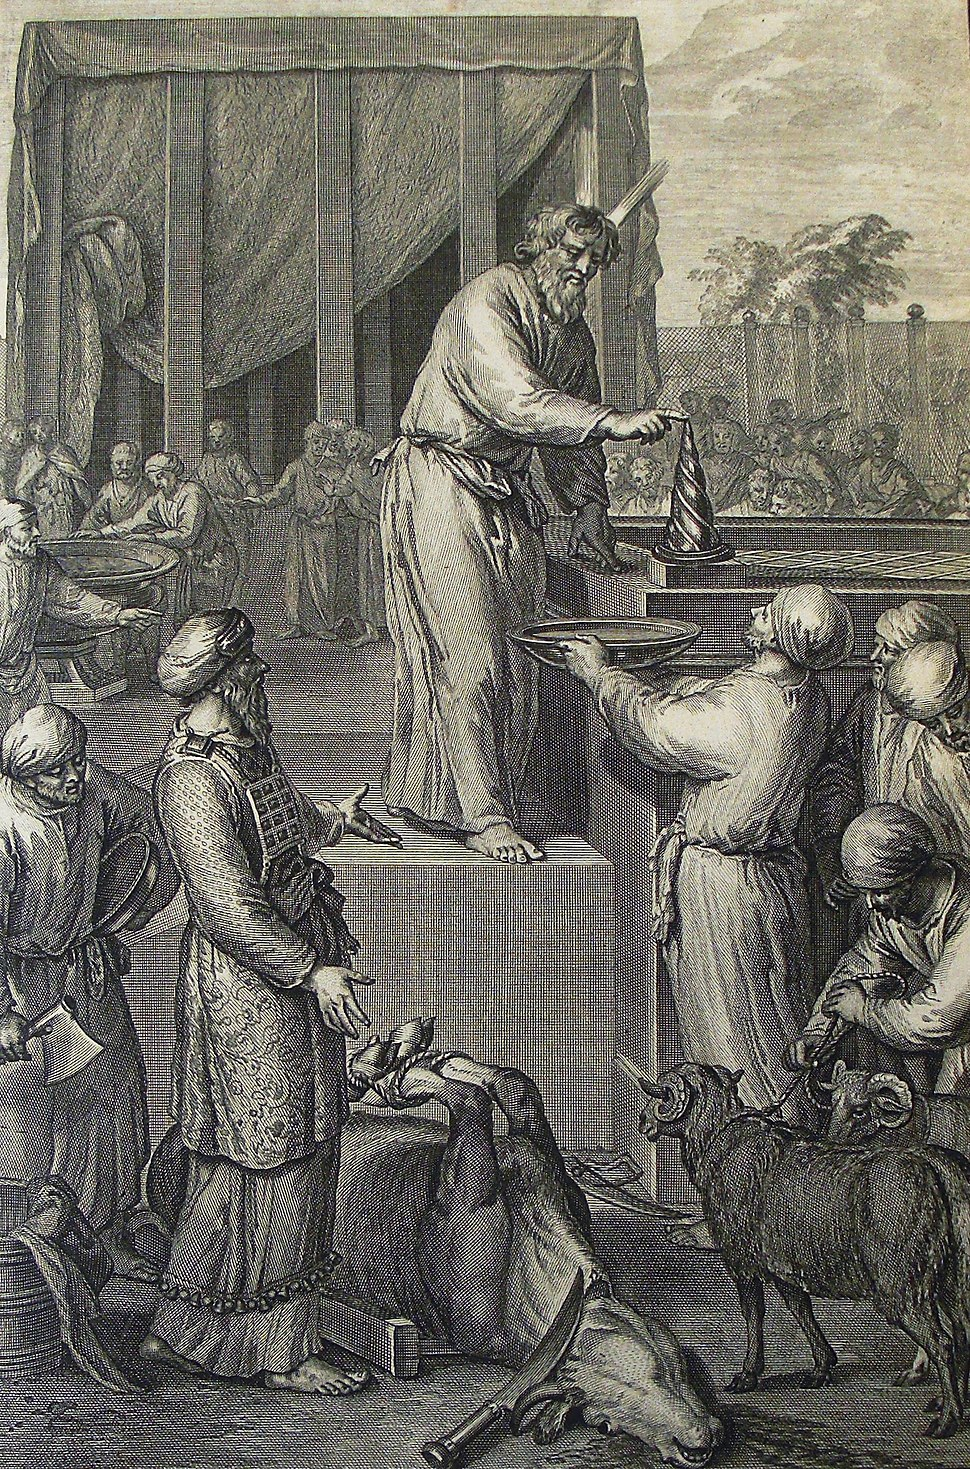 The Phillip Medhurst Picture Torah 522. Purifying the altar. Leviticus cap 8 v 15. Hoet